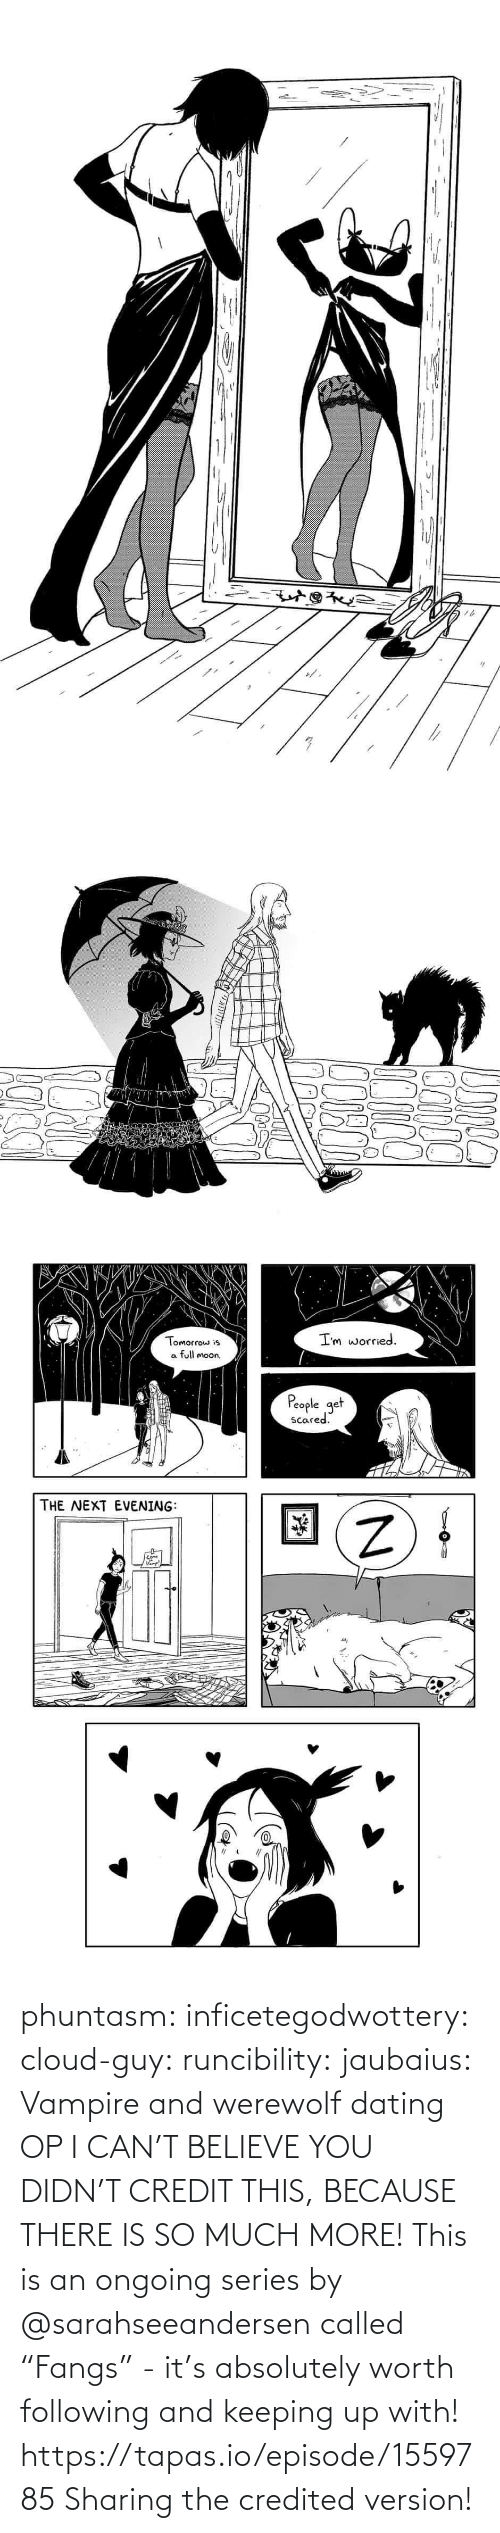 "following: phuntasm: inficetegodwottery:  cloud-guy:   runcibility:  jaubaius:   Vampire and werewolf dating   OP I CAN'T BELIEVE YOU DIDN'T CREDIT THIS, BECAUSE THERE IS SO MUCH MORE! This is an ongoing series by @sarahseeandersen called ""Fangs"" - it's absolutely worth following and keeping up with! https://tapas.io/episode/1559785    Sharing the credited version!"